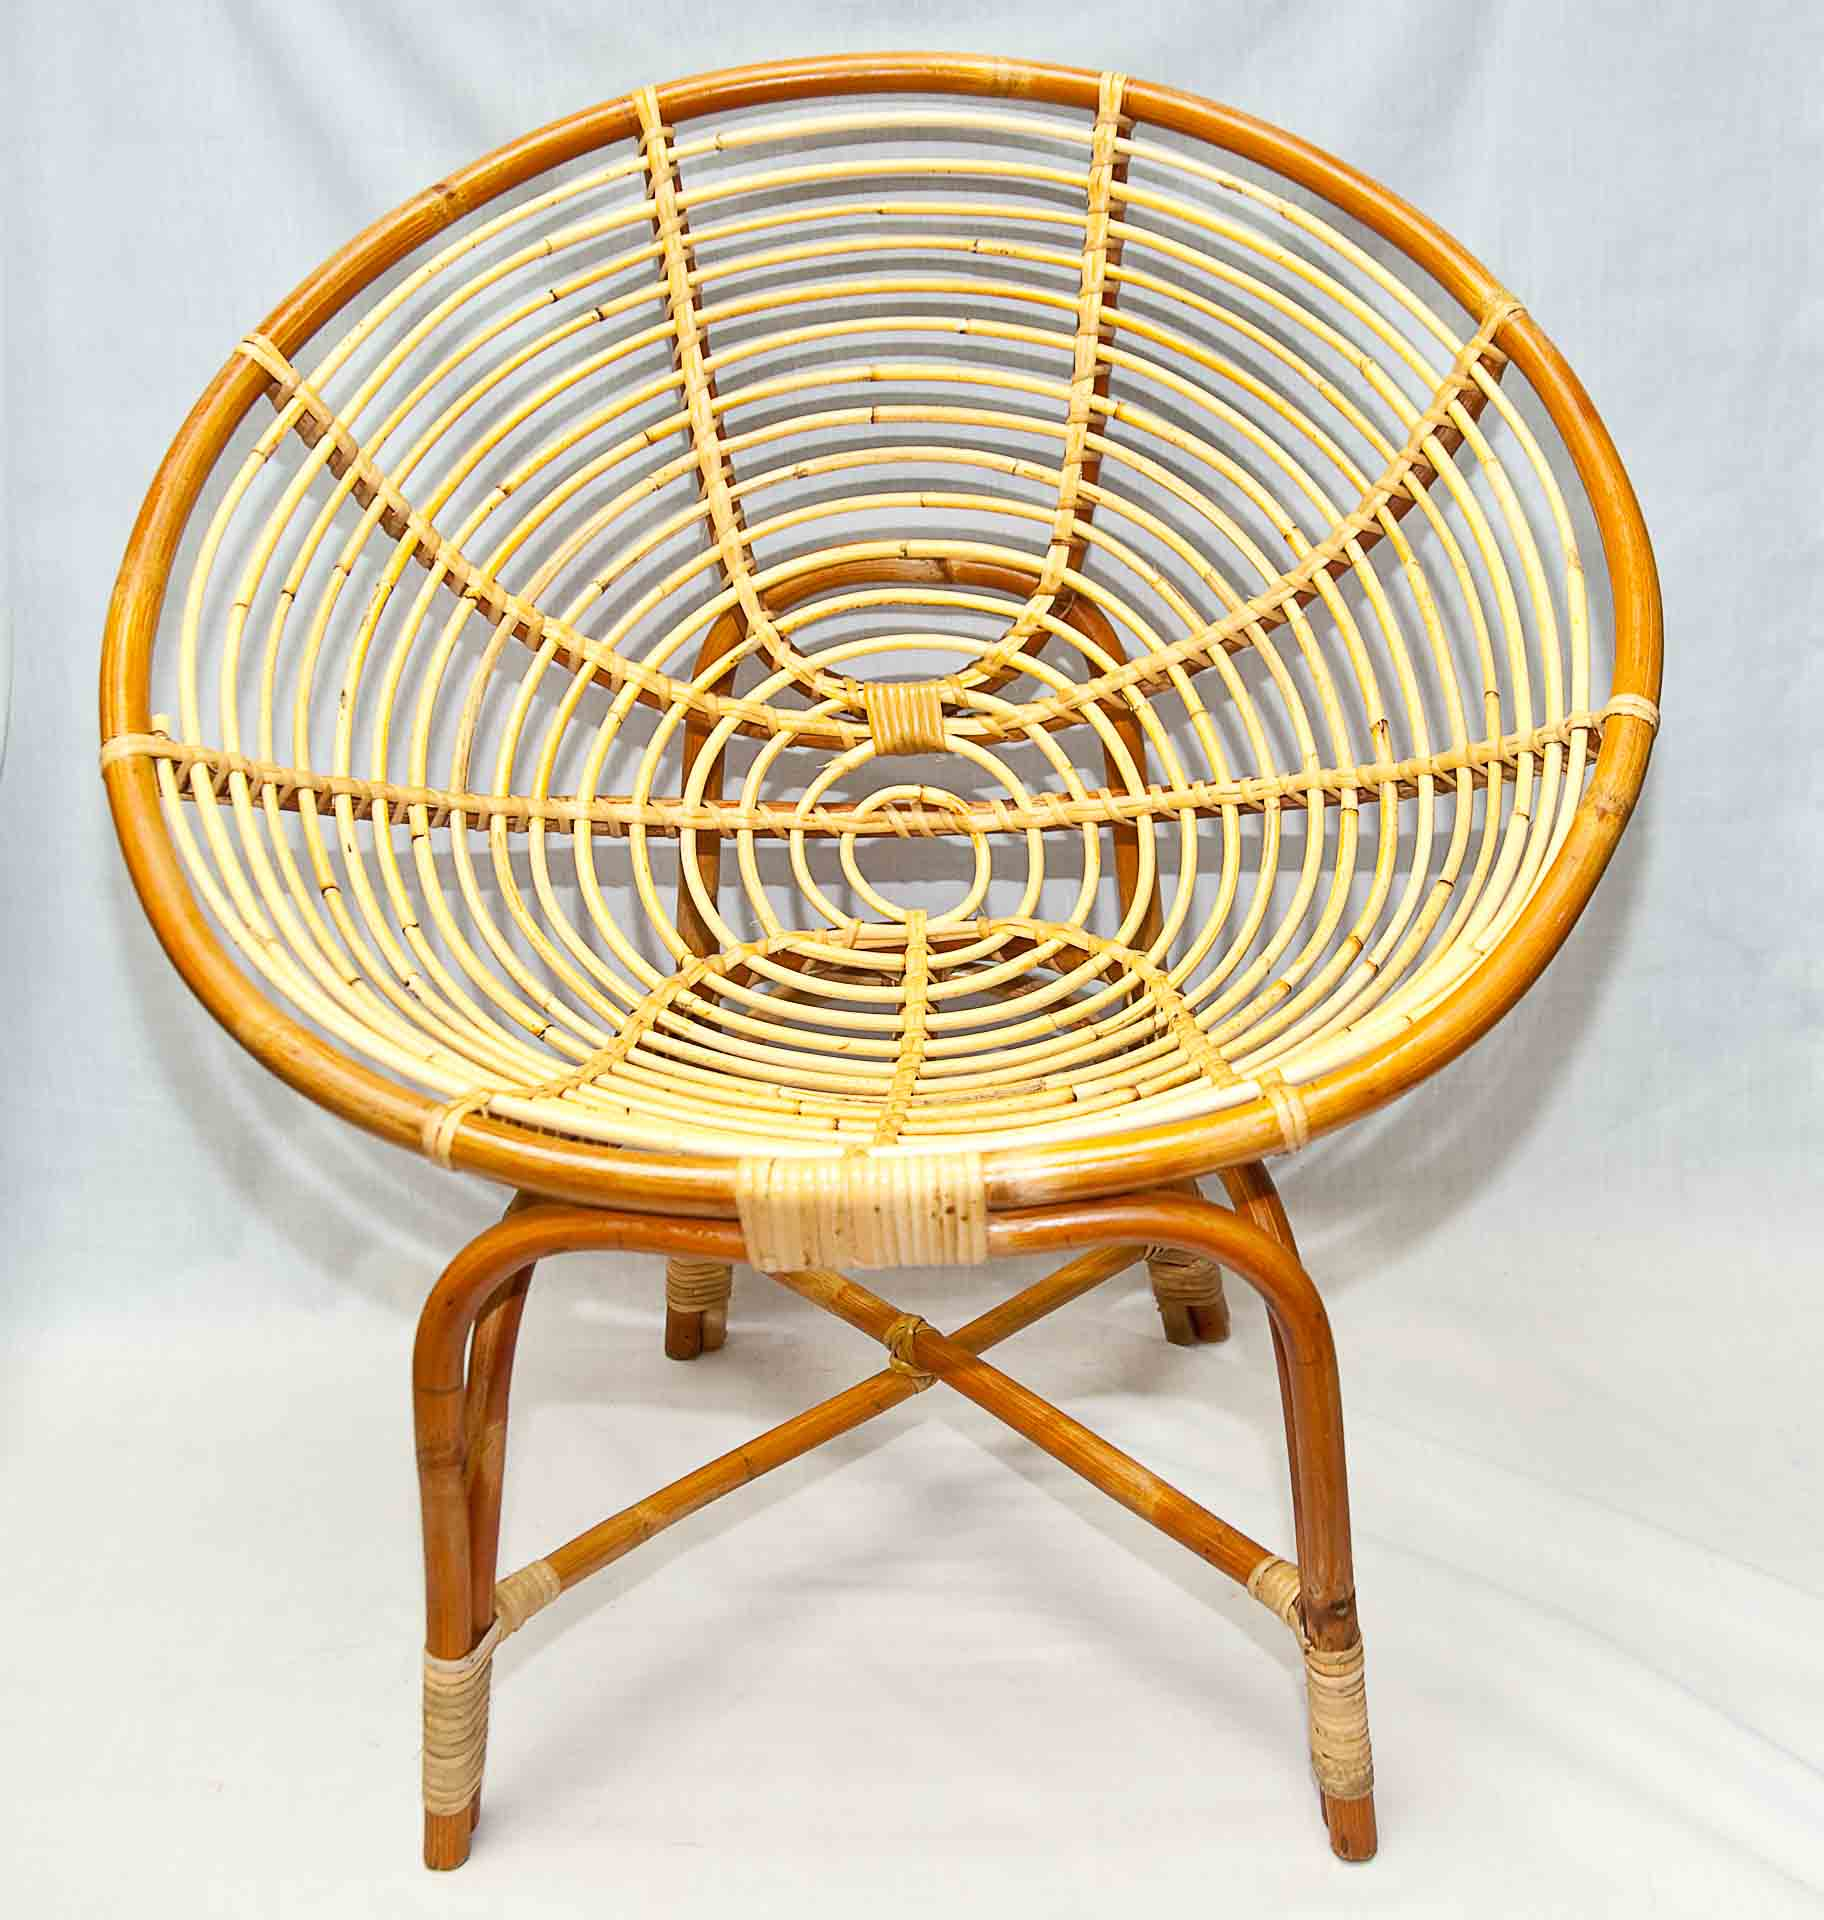 Beau Ikea Basket Chair | Indoor Wicker Furniture | Rattan Chair